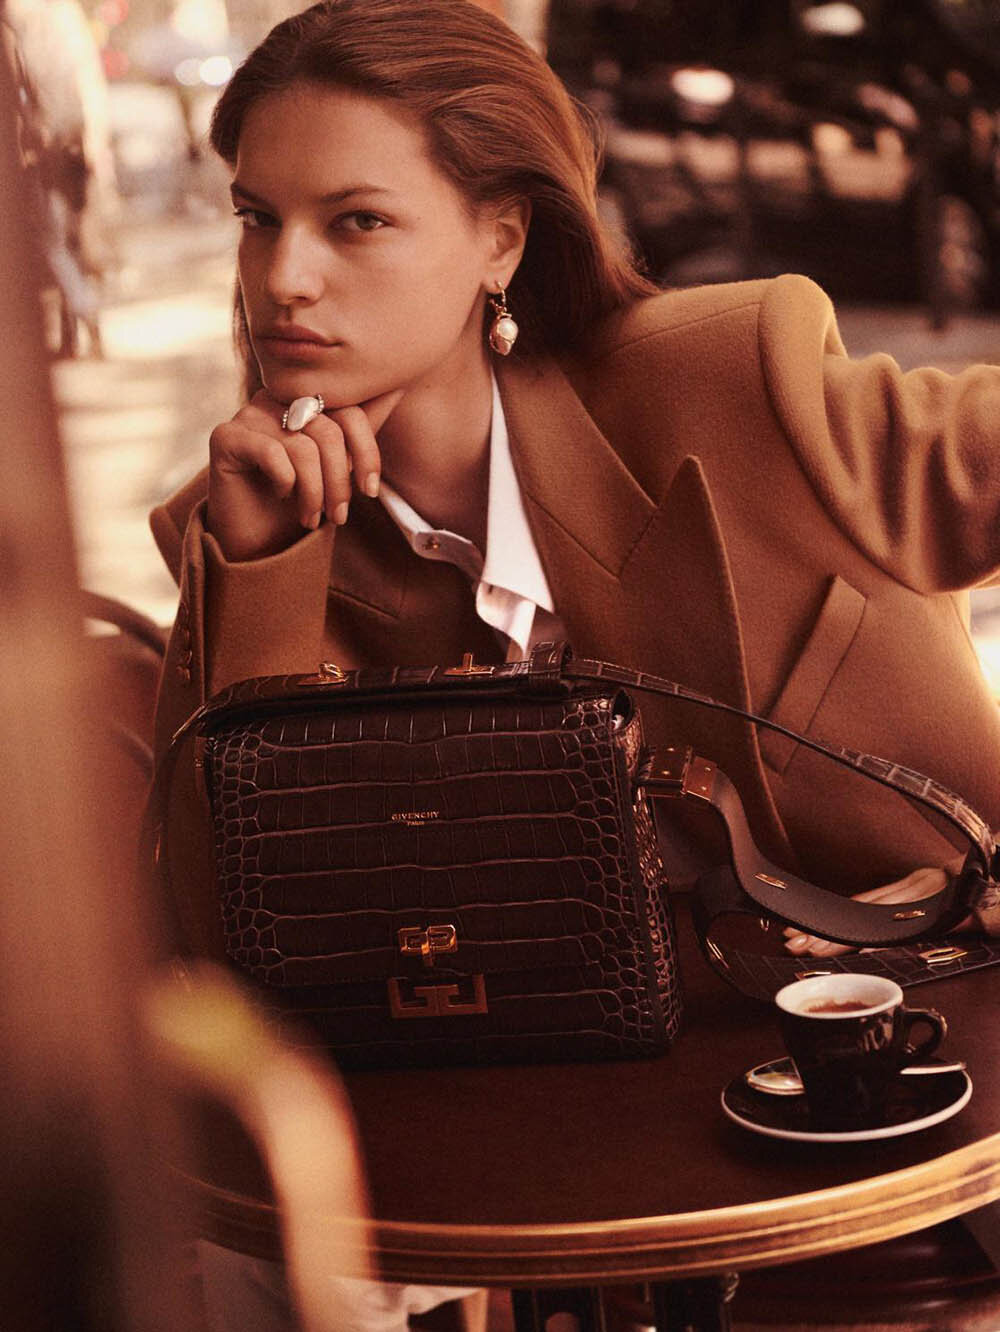 Faretta-Radic-by-Mel-Bles-for-Vogue-Paris-September-2019-1.jpg